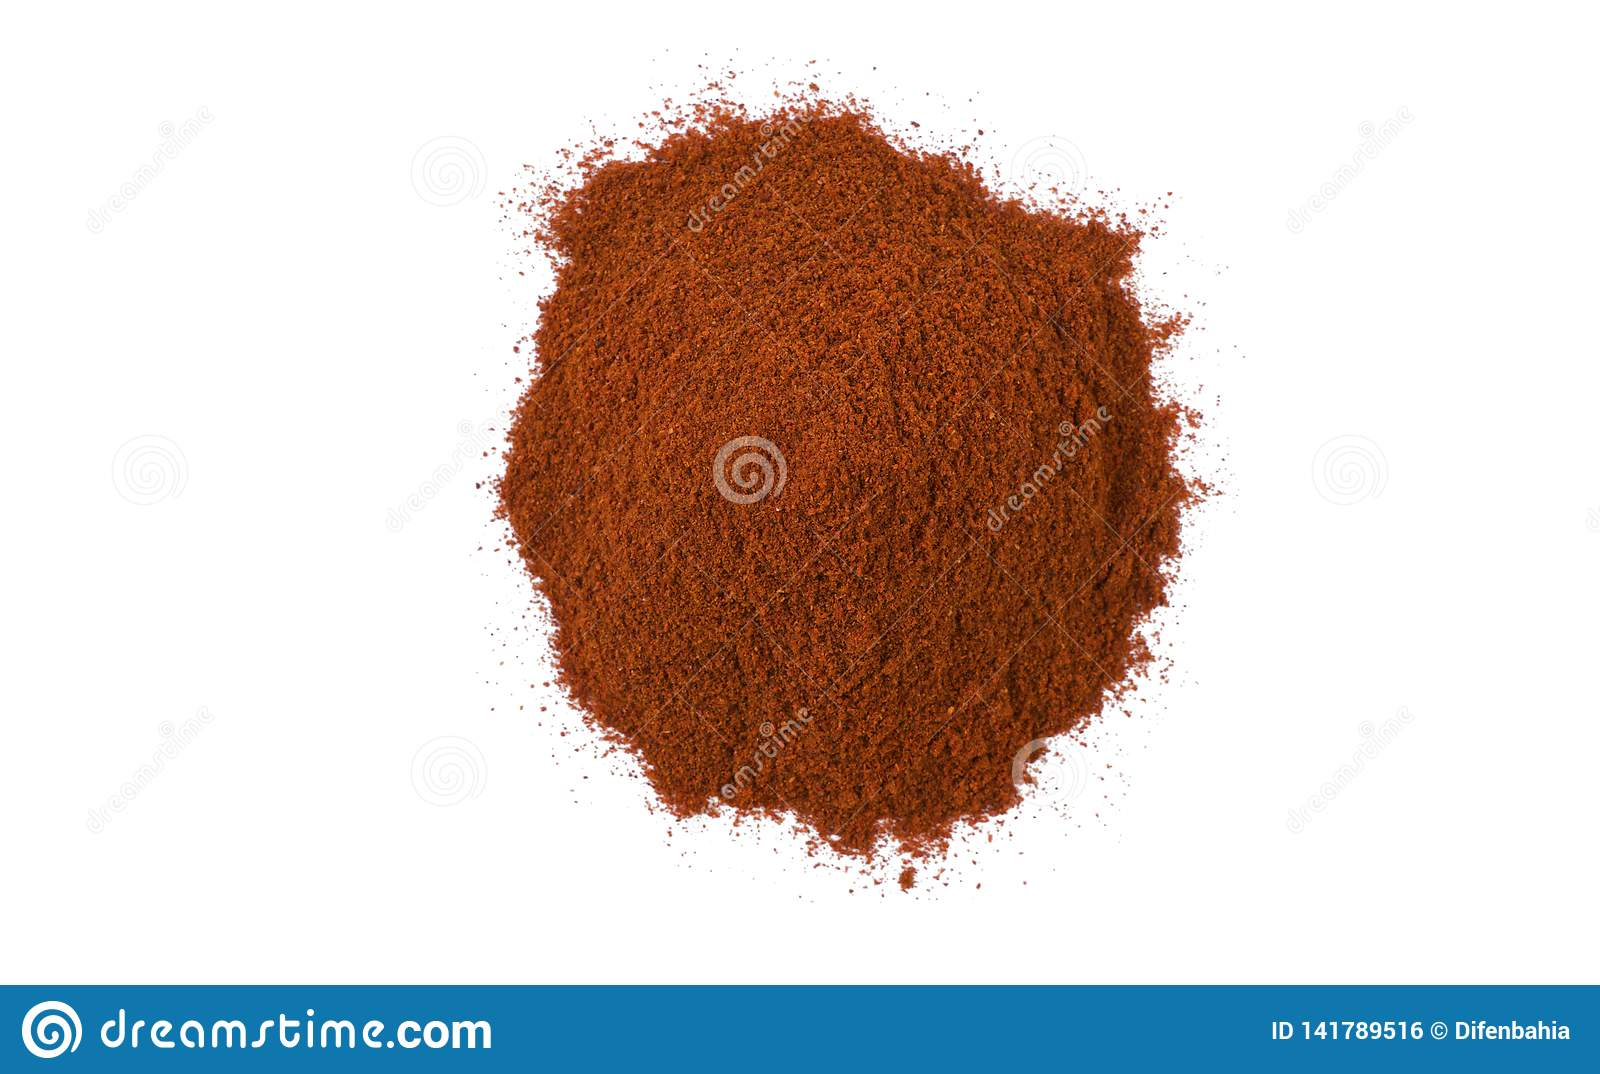 Milled or ground paprika or red pepper heap isolated on white background. top view